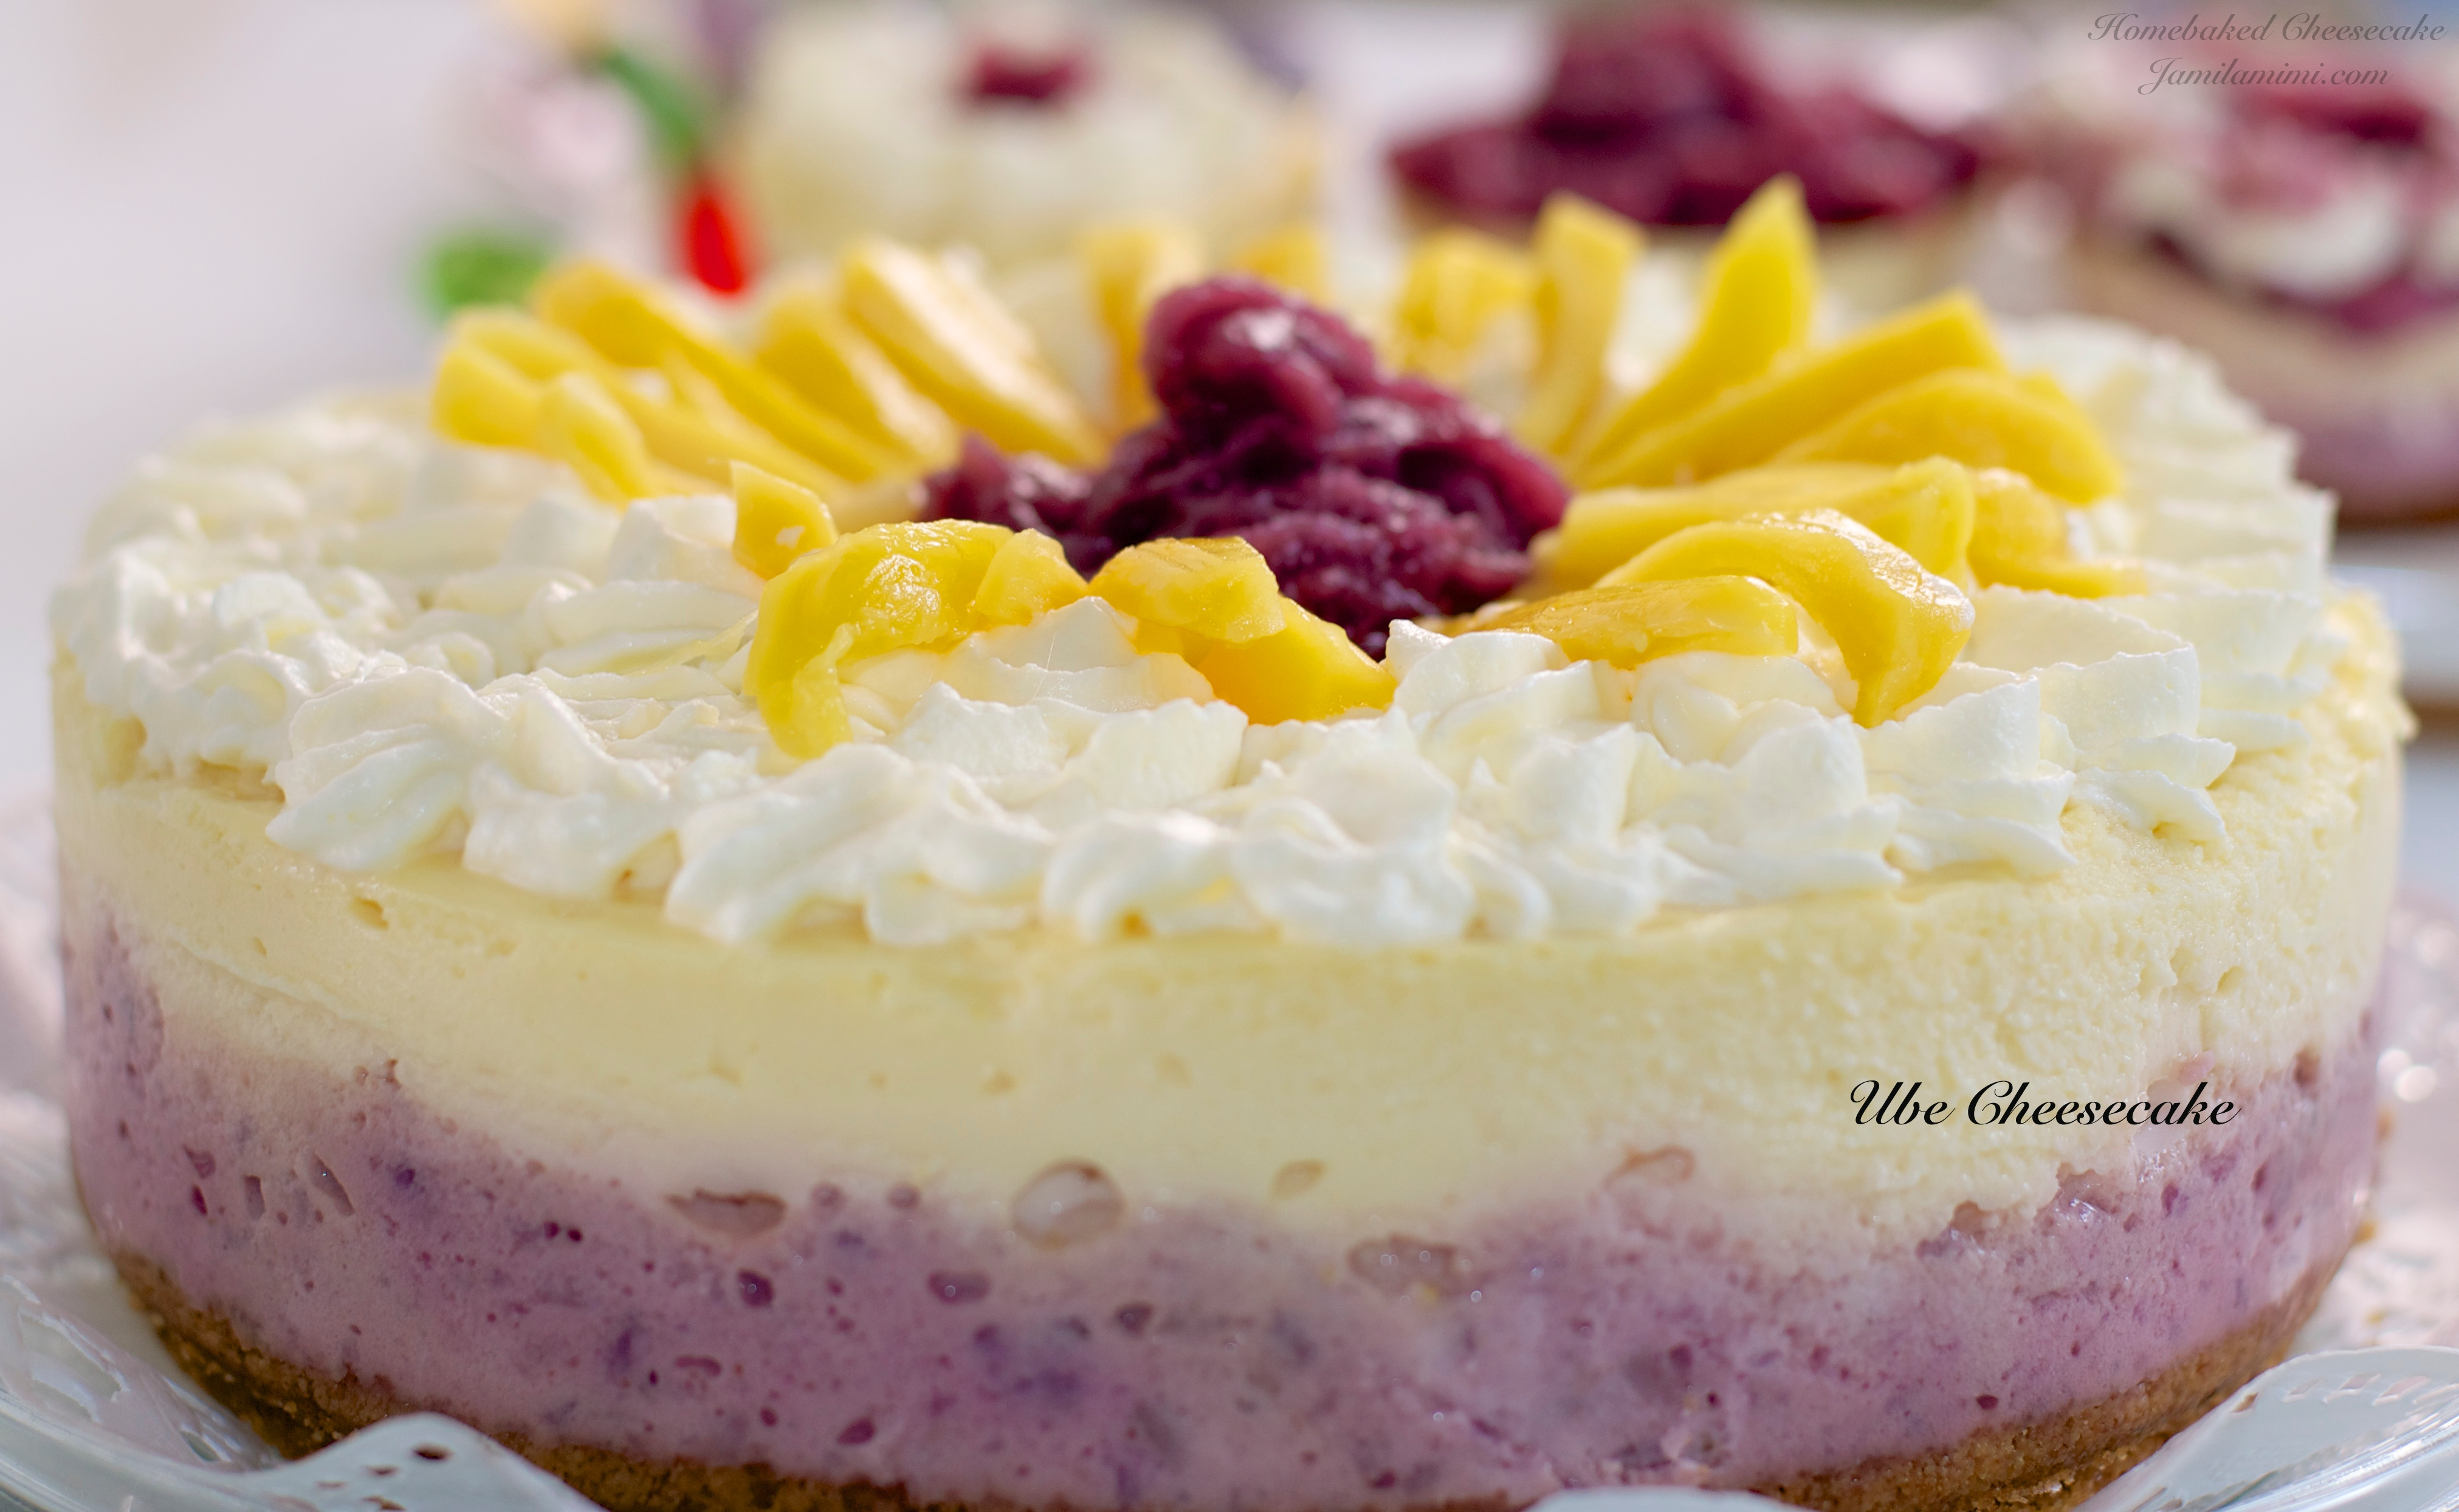 Home Baked Cheesecake Challenge Flavour 2 Ube Cheesecake